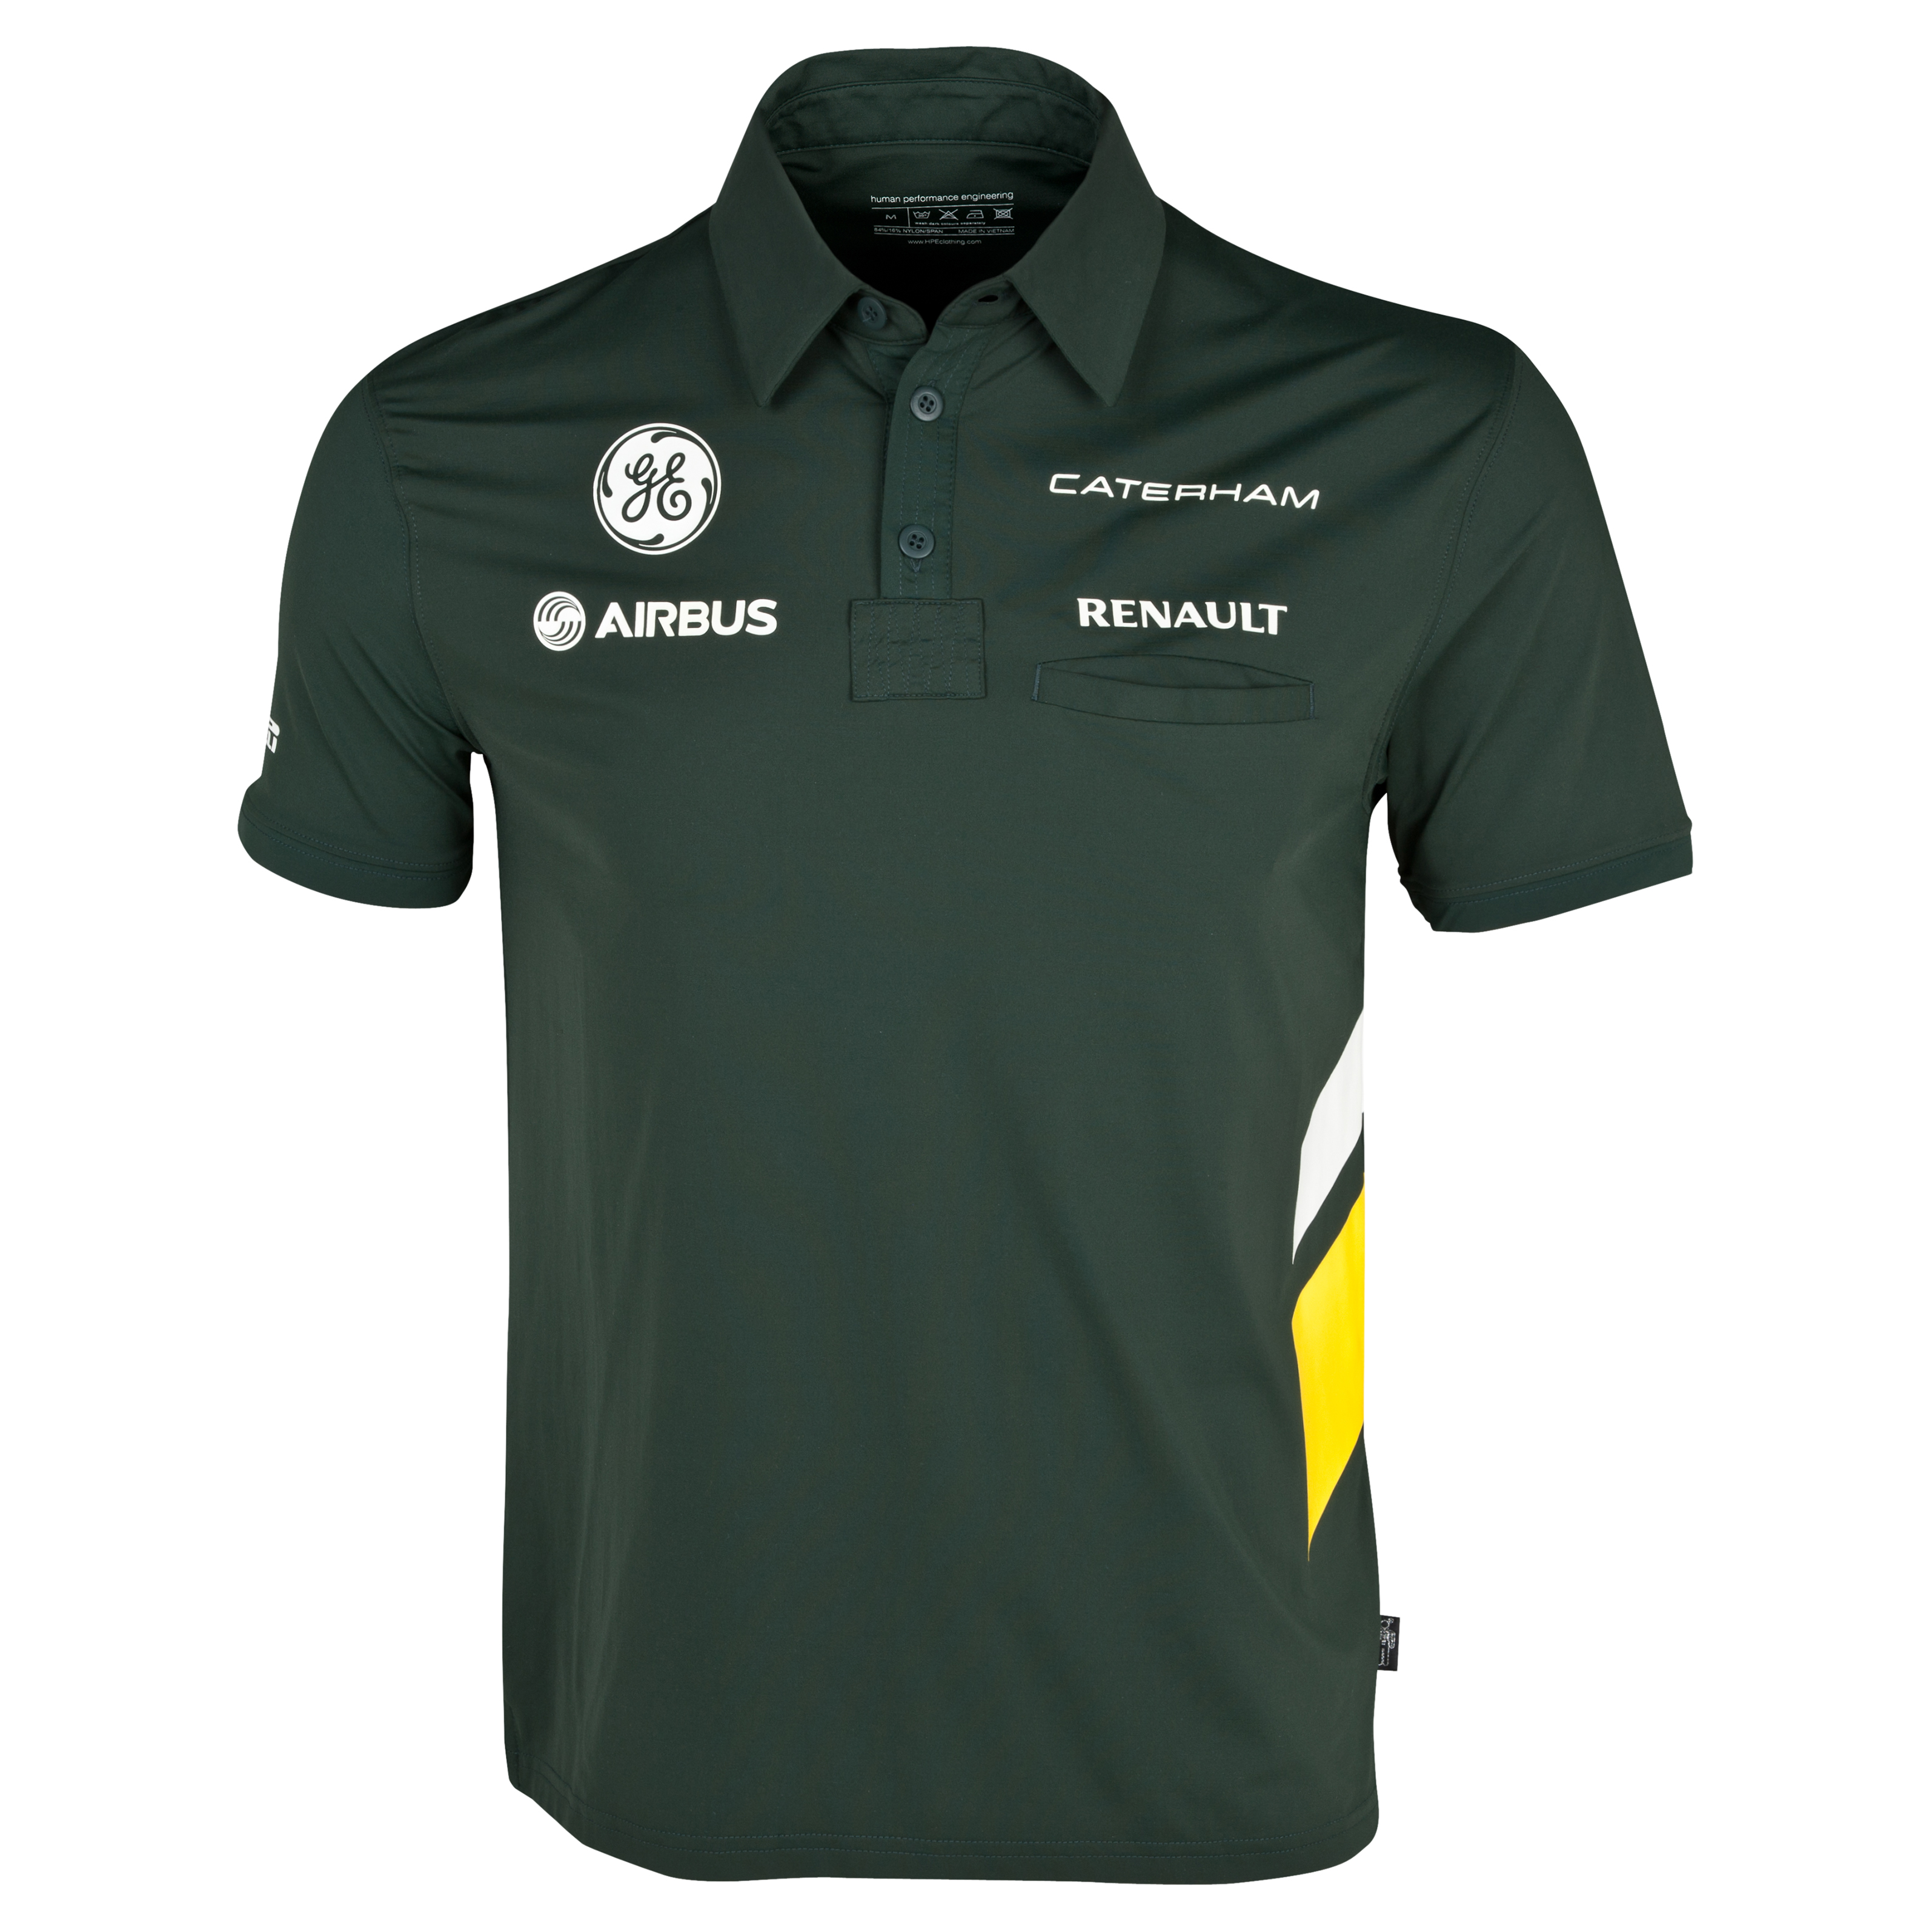 Caterham F1 Team Replica Polo